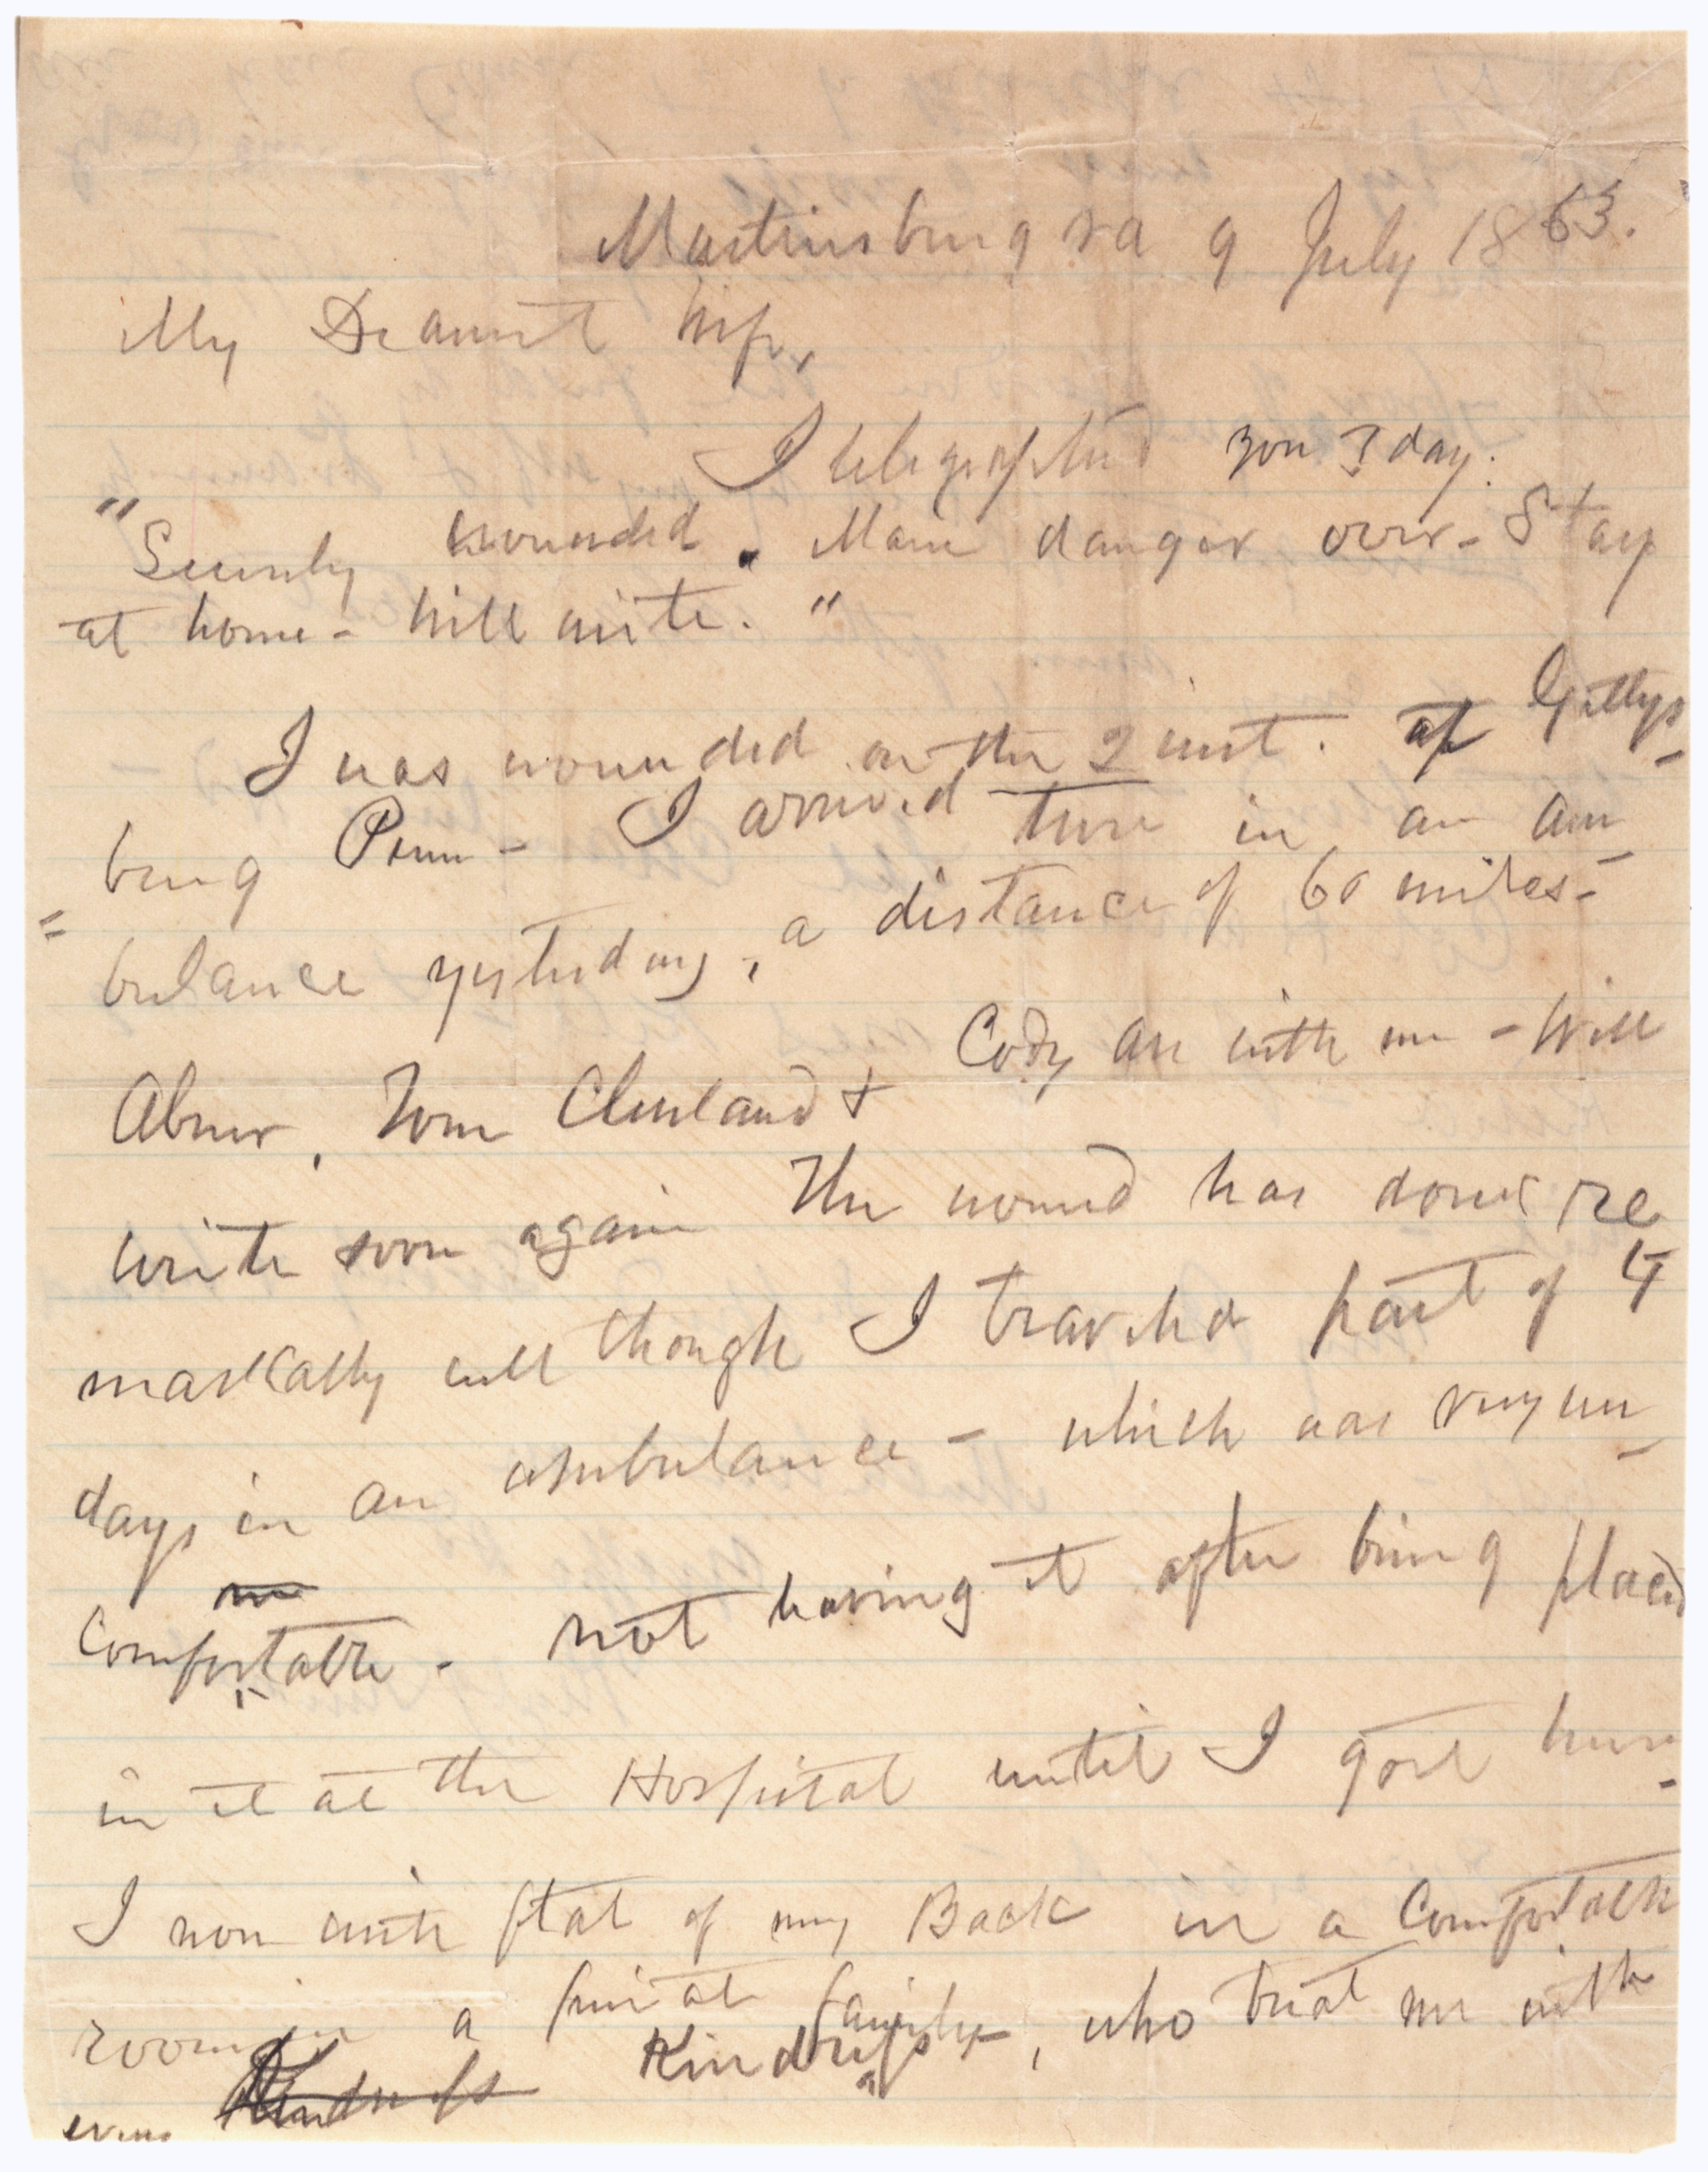 Paul Jones Semmes to Emily J. Semmes, July 9, 1863 (Gilder Lehrman Collection)